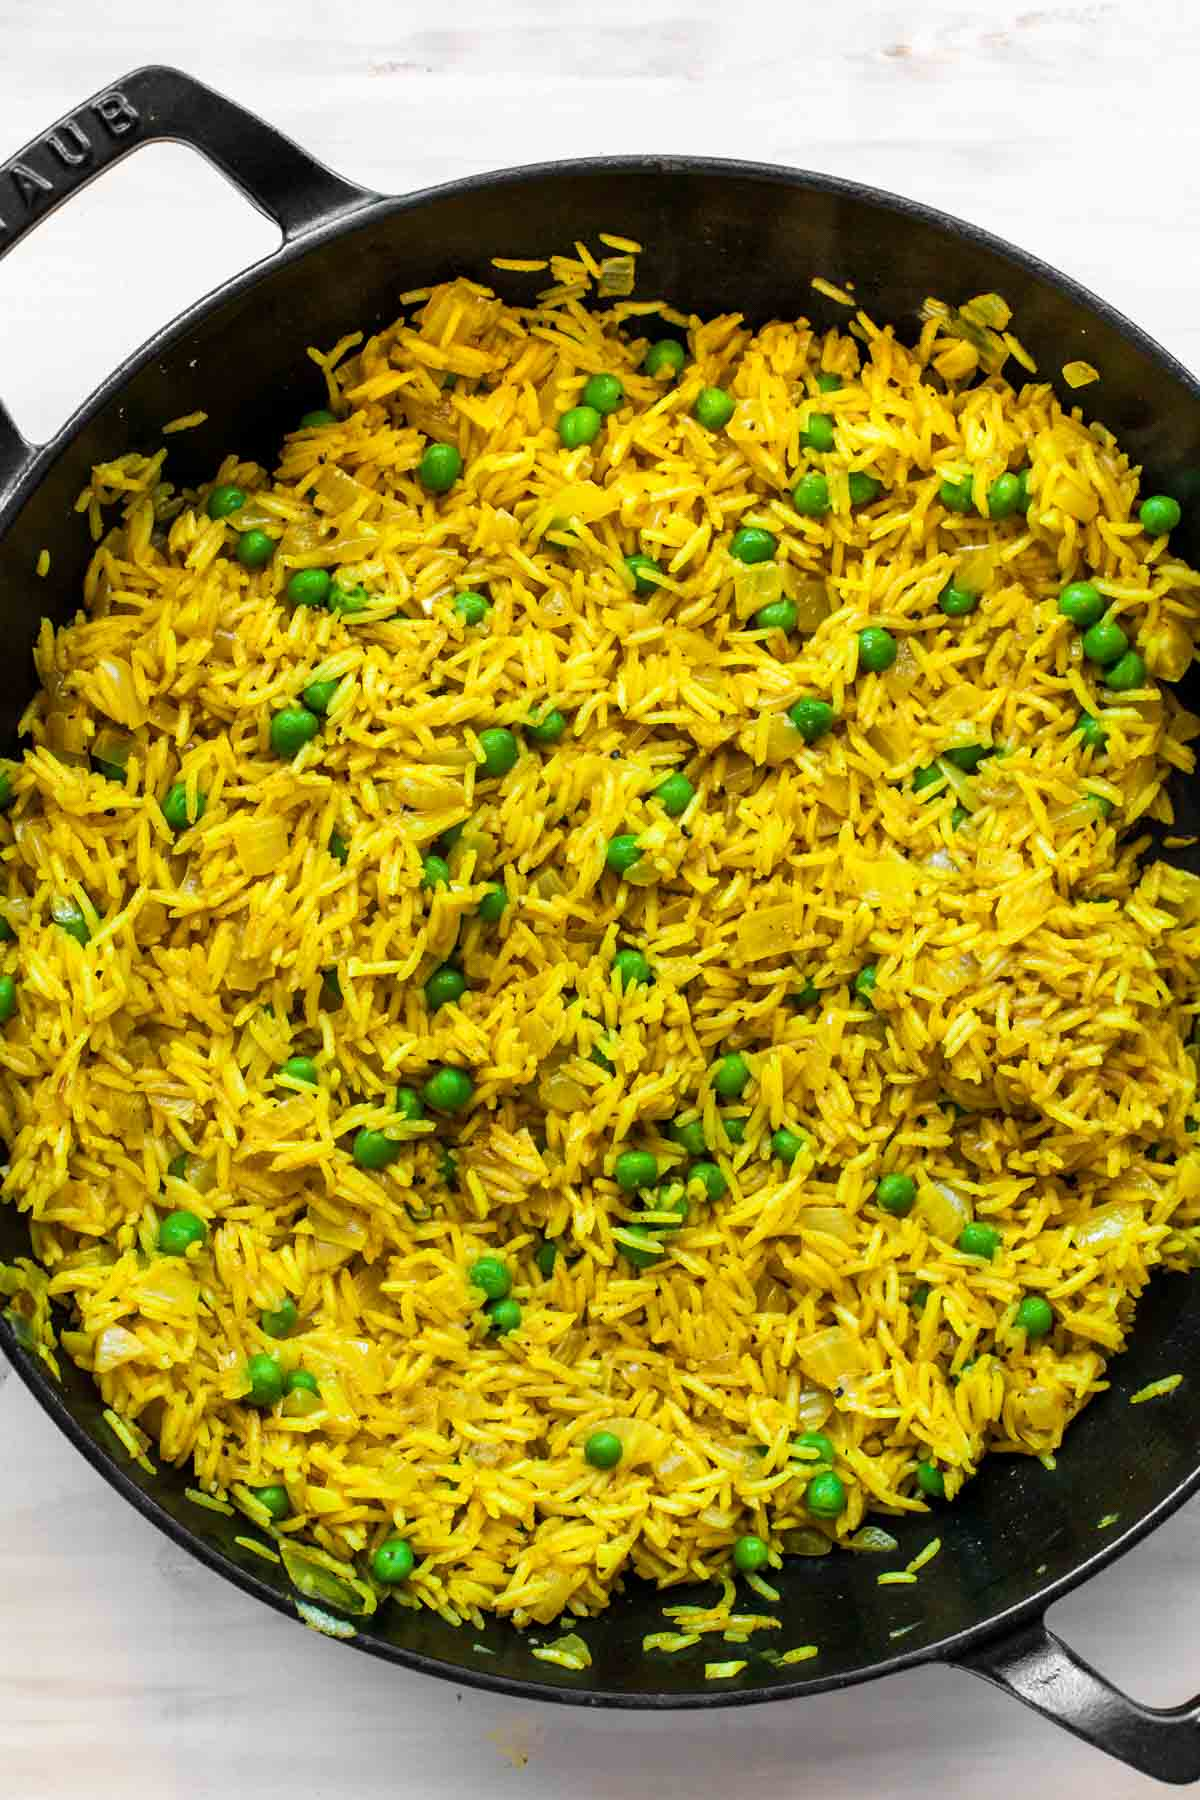 Curried white rice and peas in a large black skillet